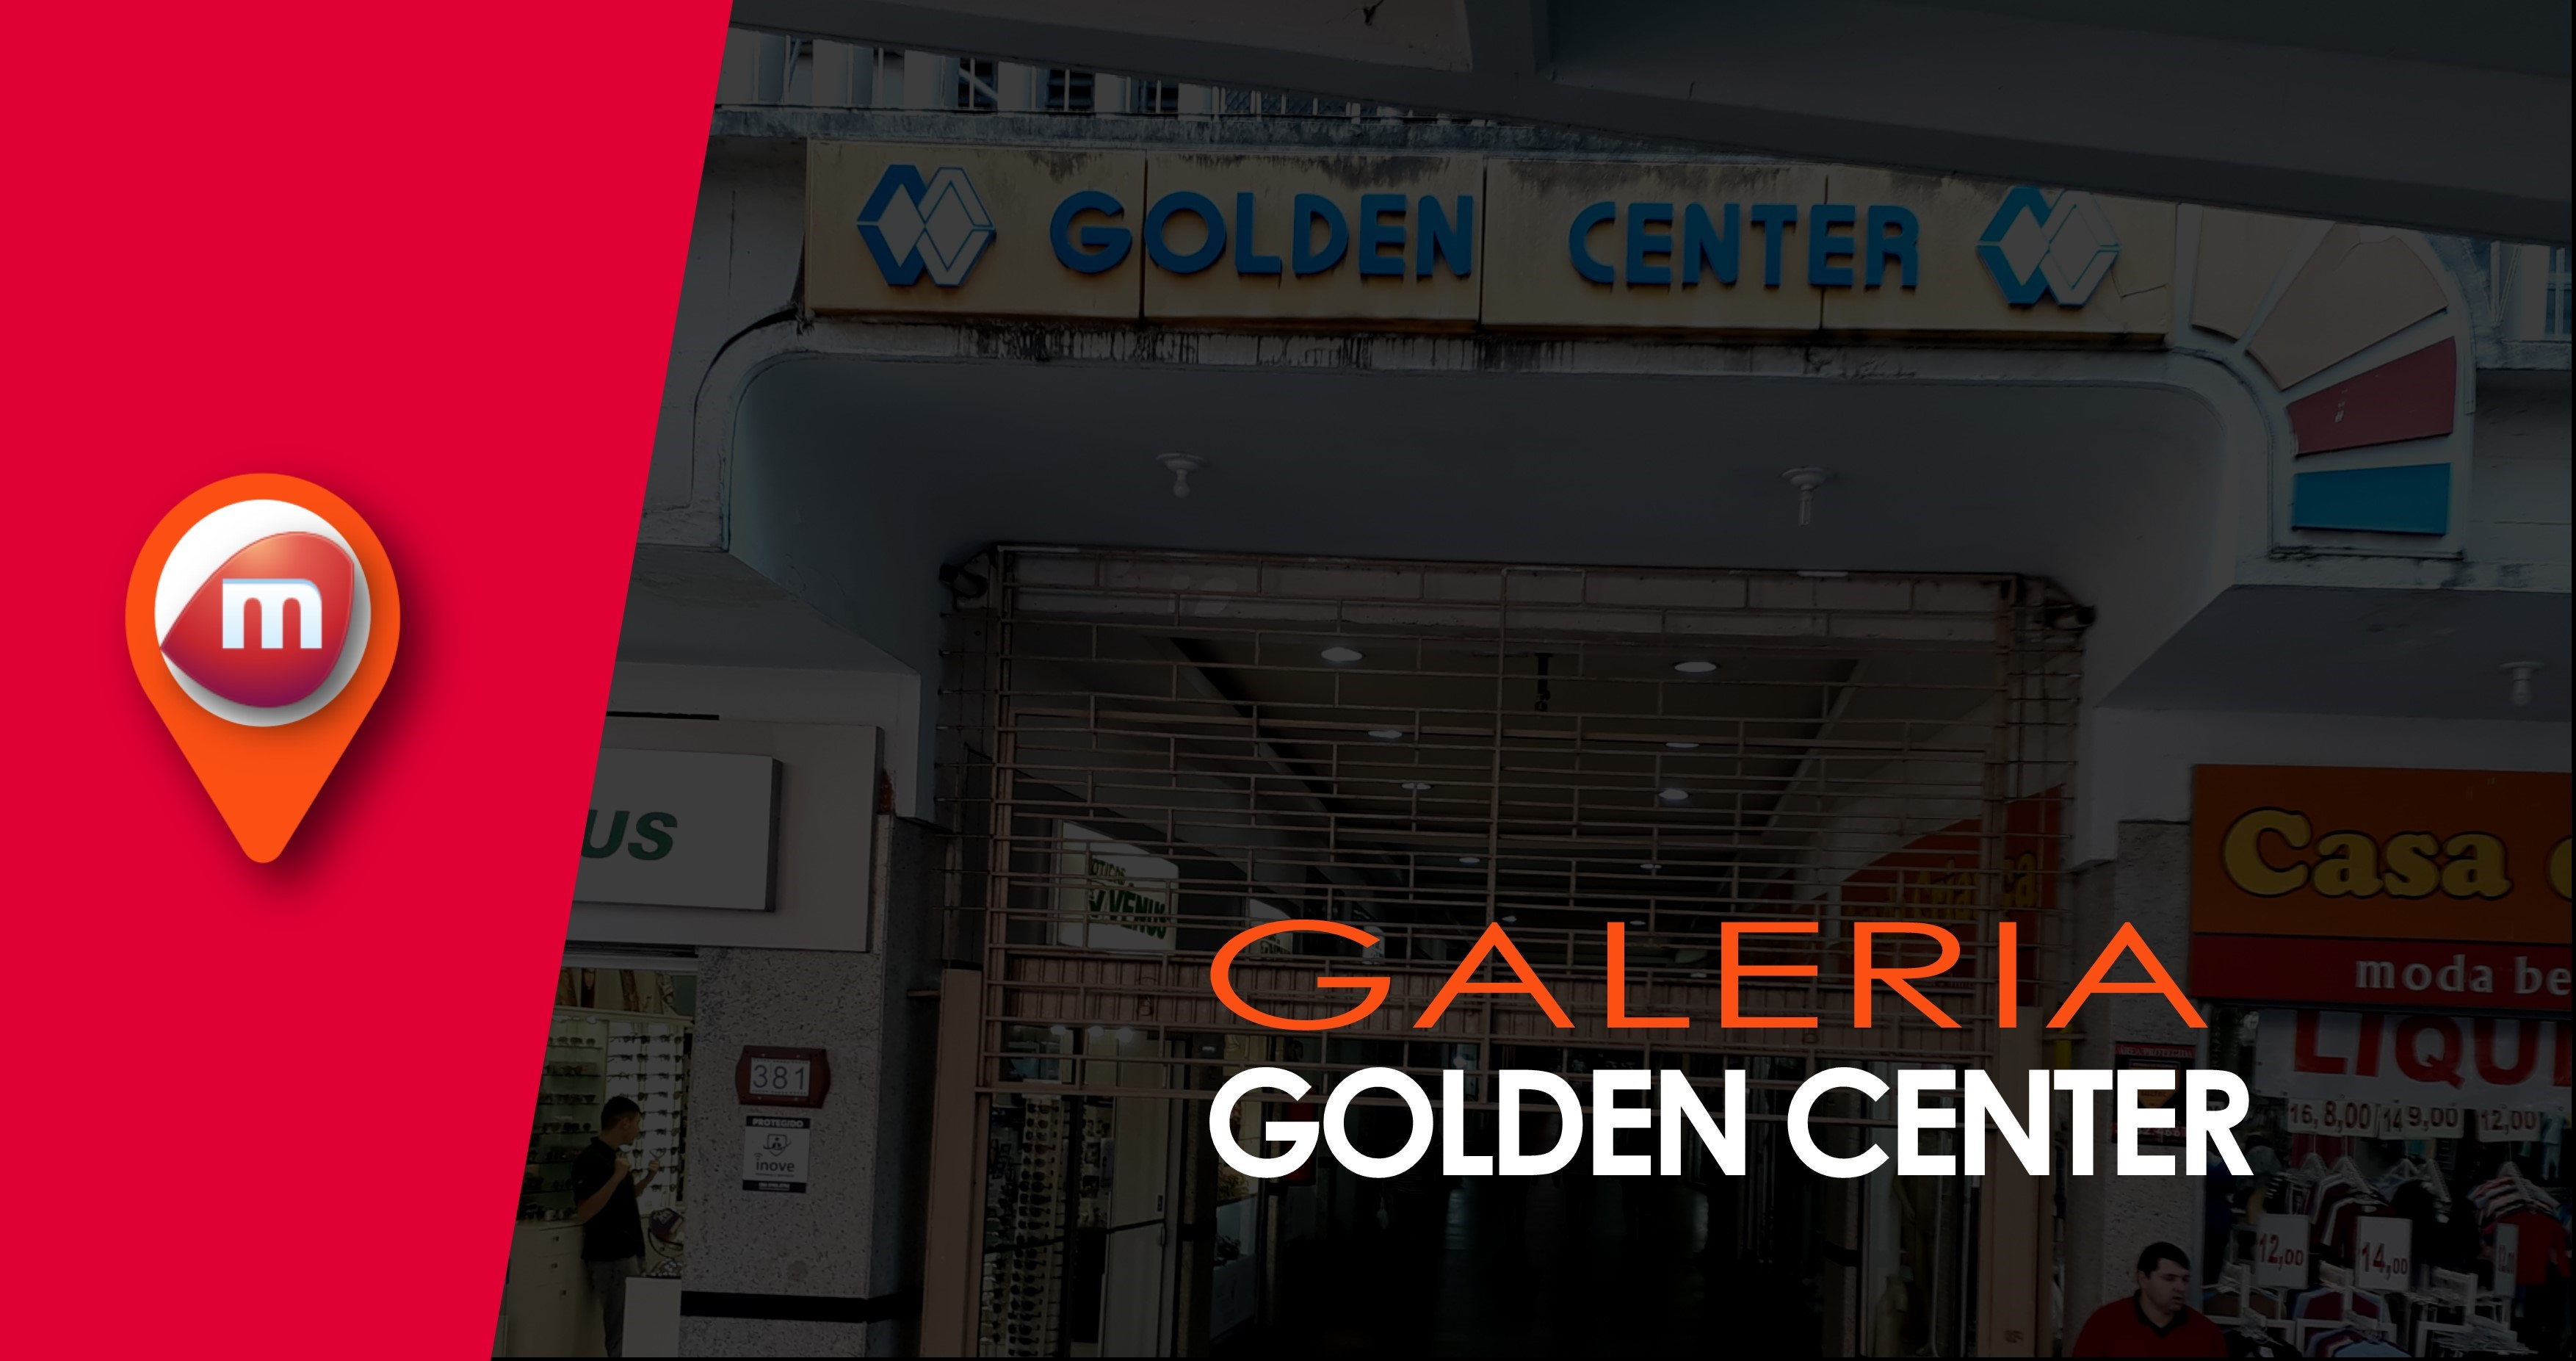 67d1415cc86 A Galeria Golden Center foi o primeiro shopping de Canoas